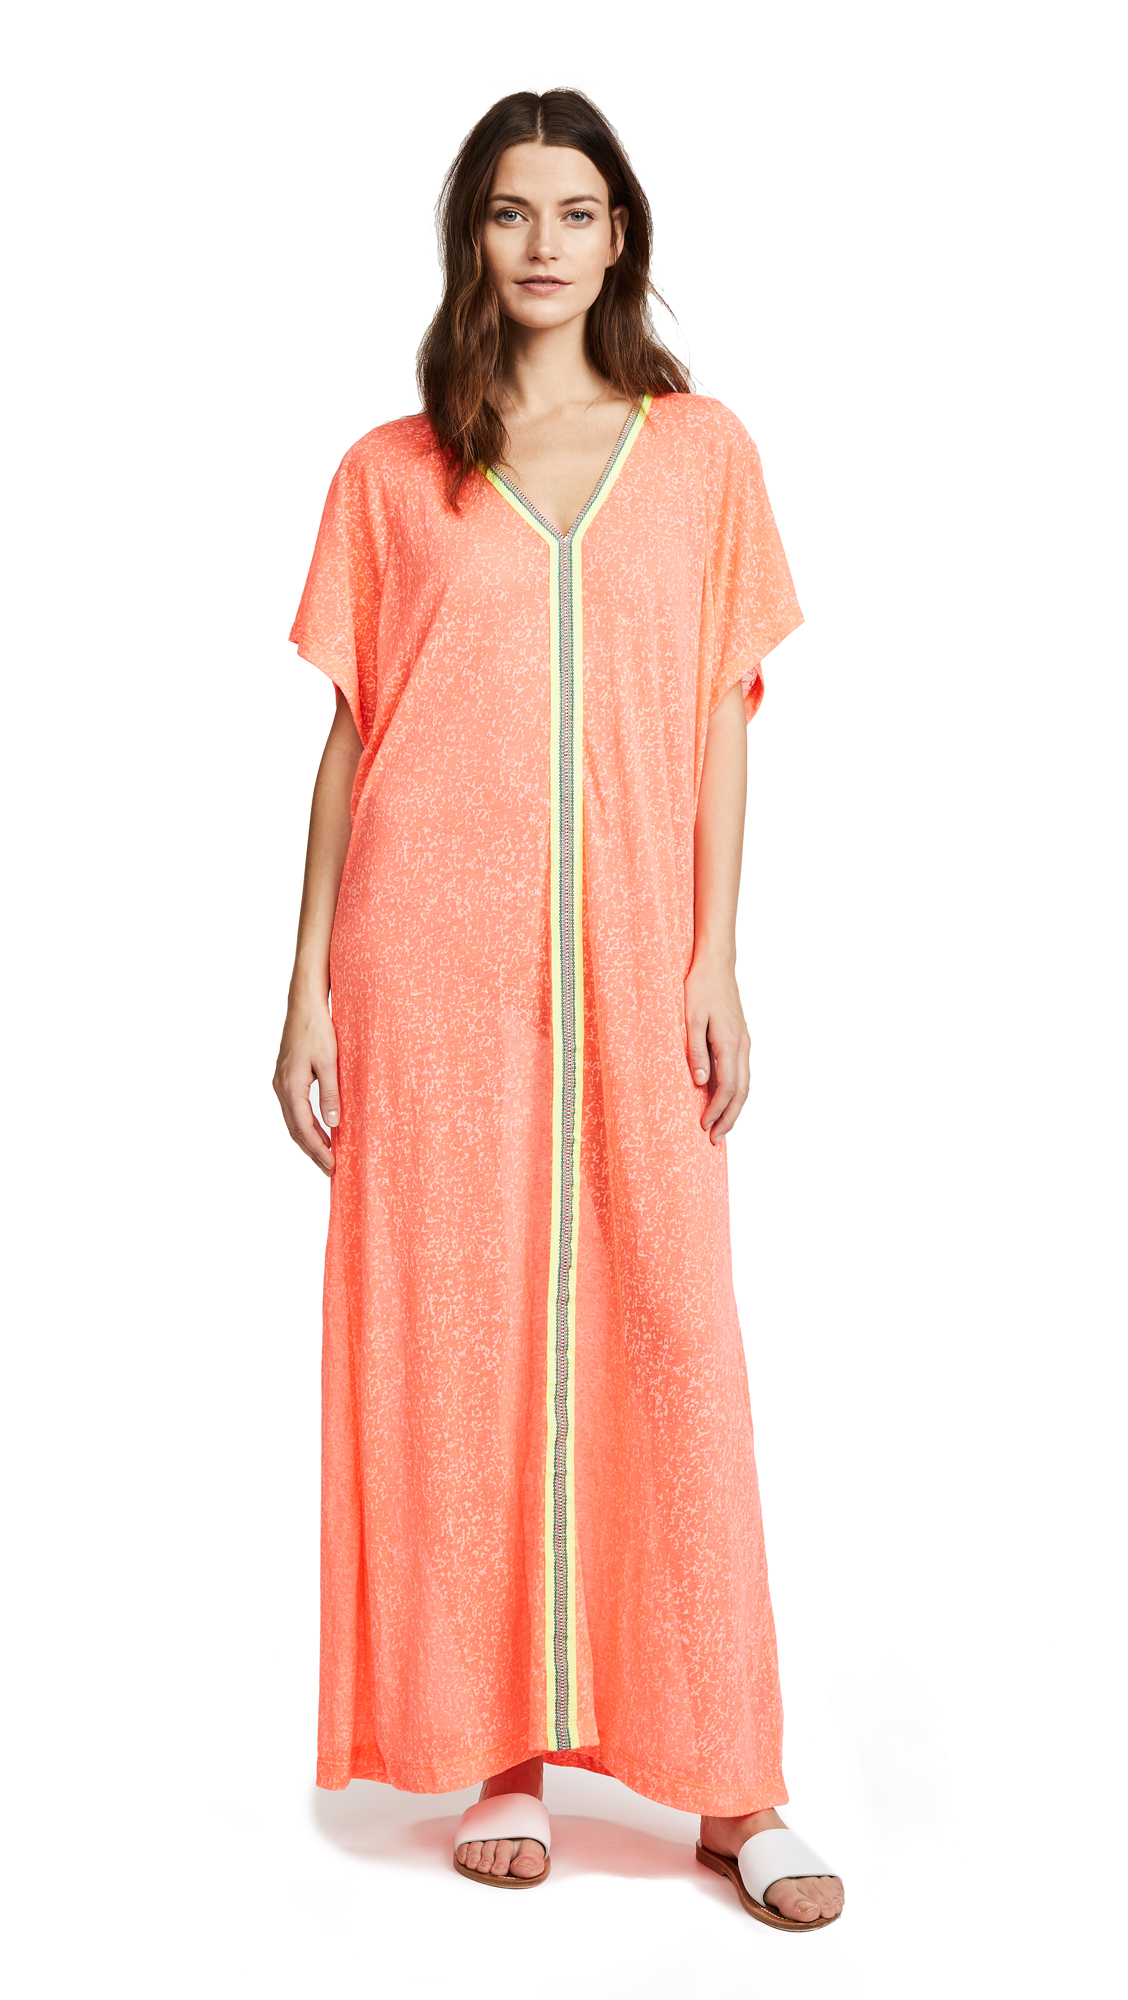 Pitusa Abaya Maxi Dress - Watermelon